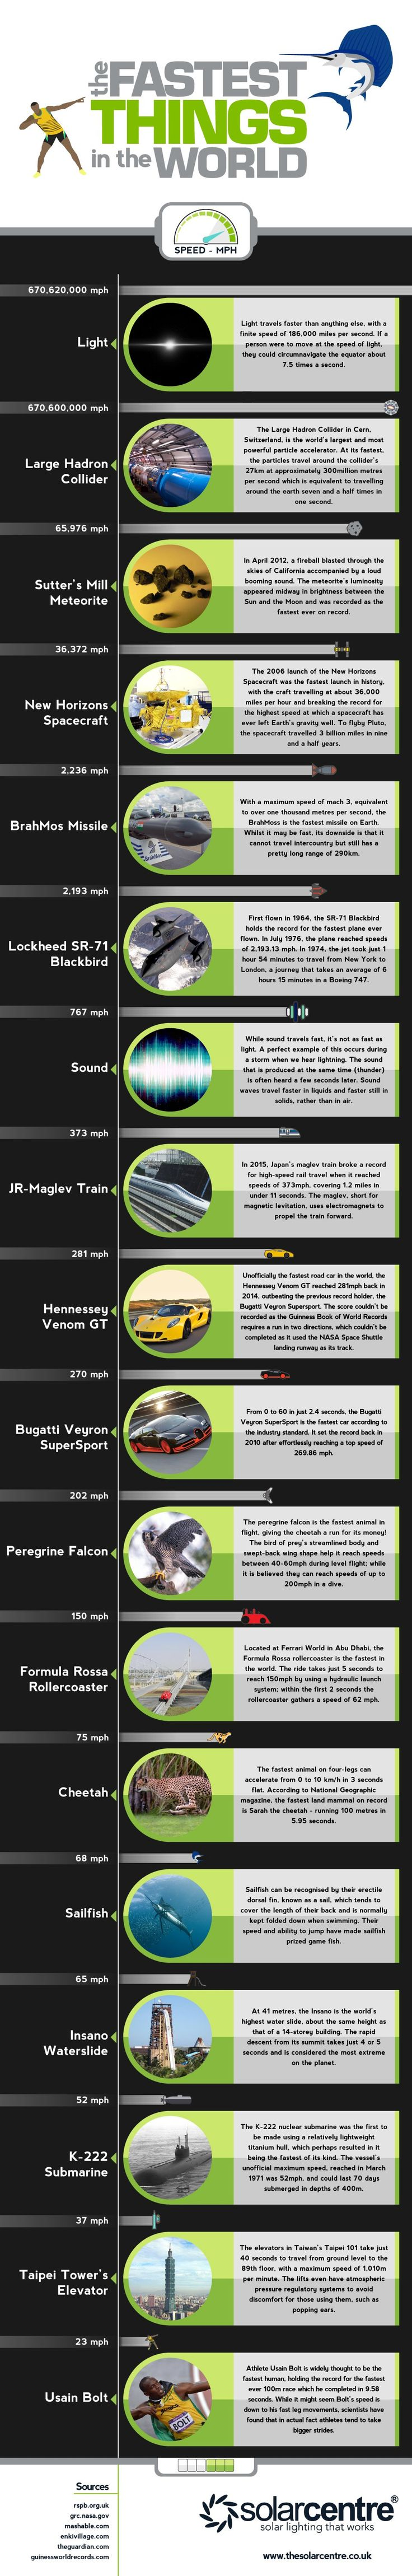 The Fastest Things in the World #Infographic #Science #Technology